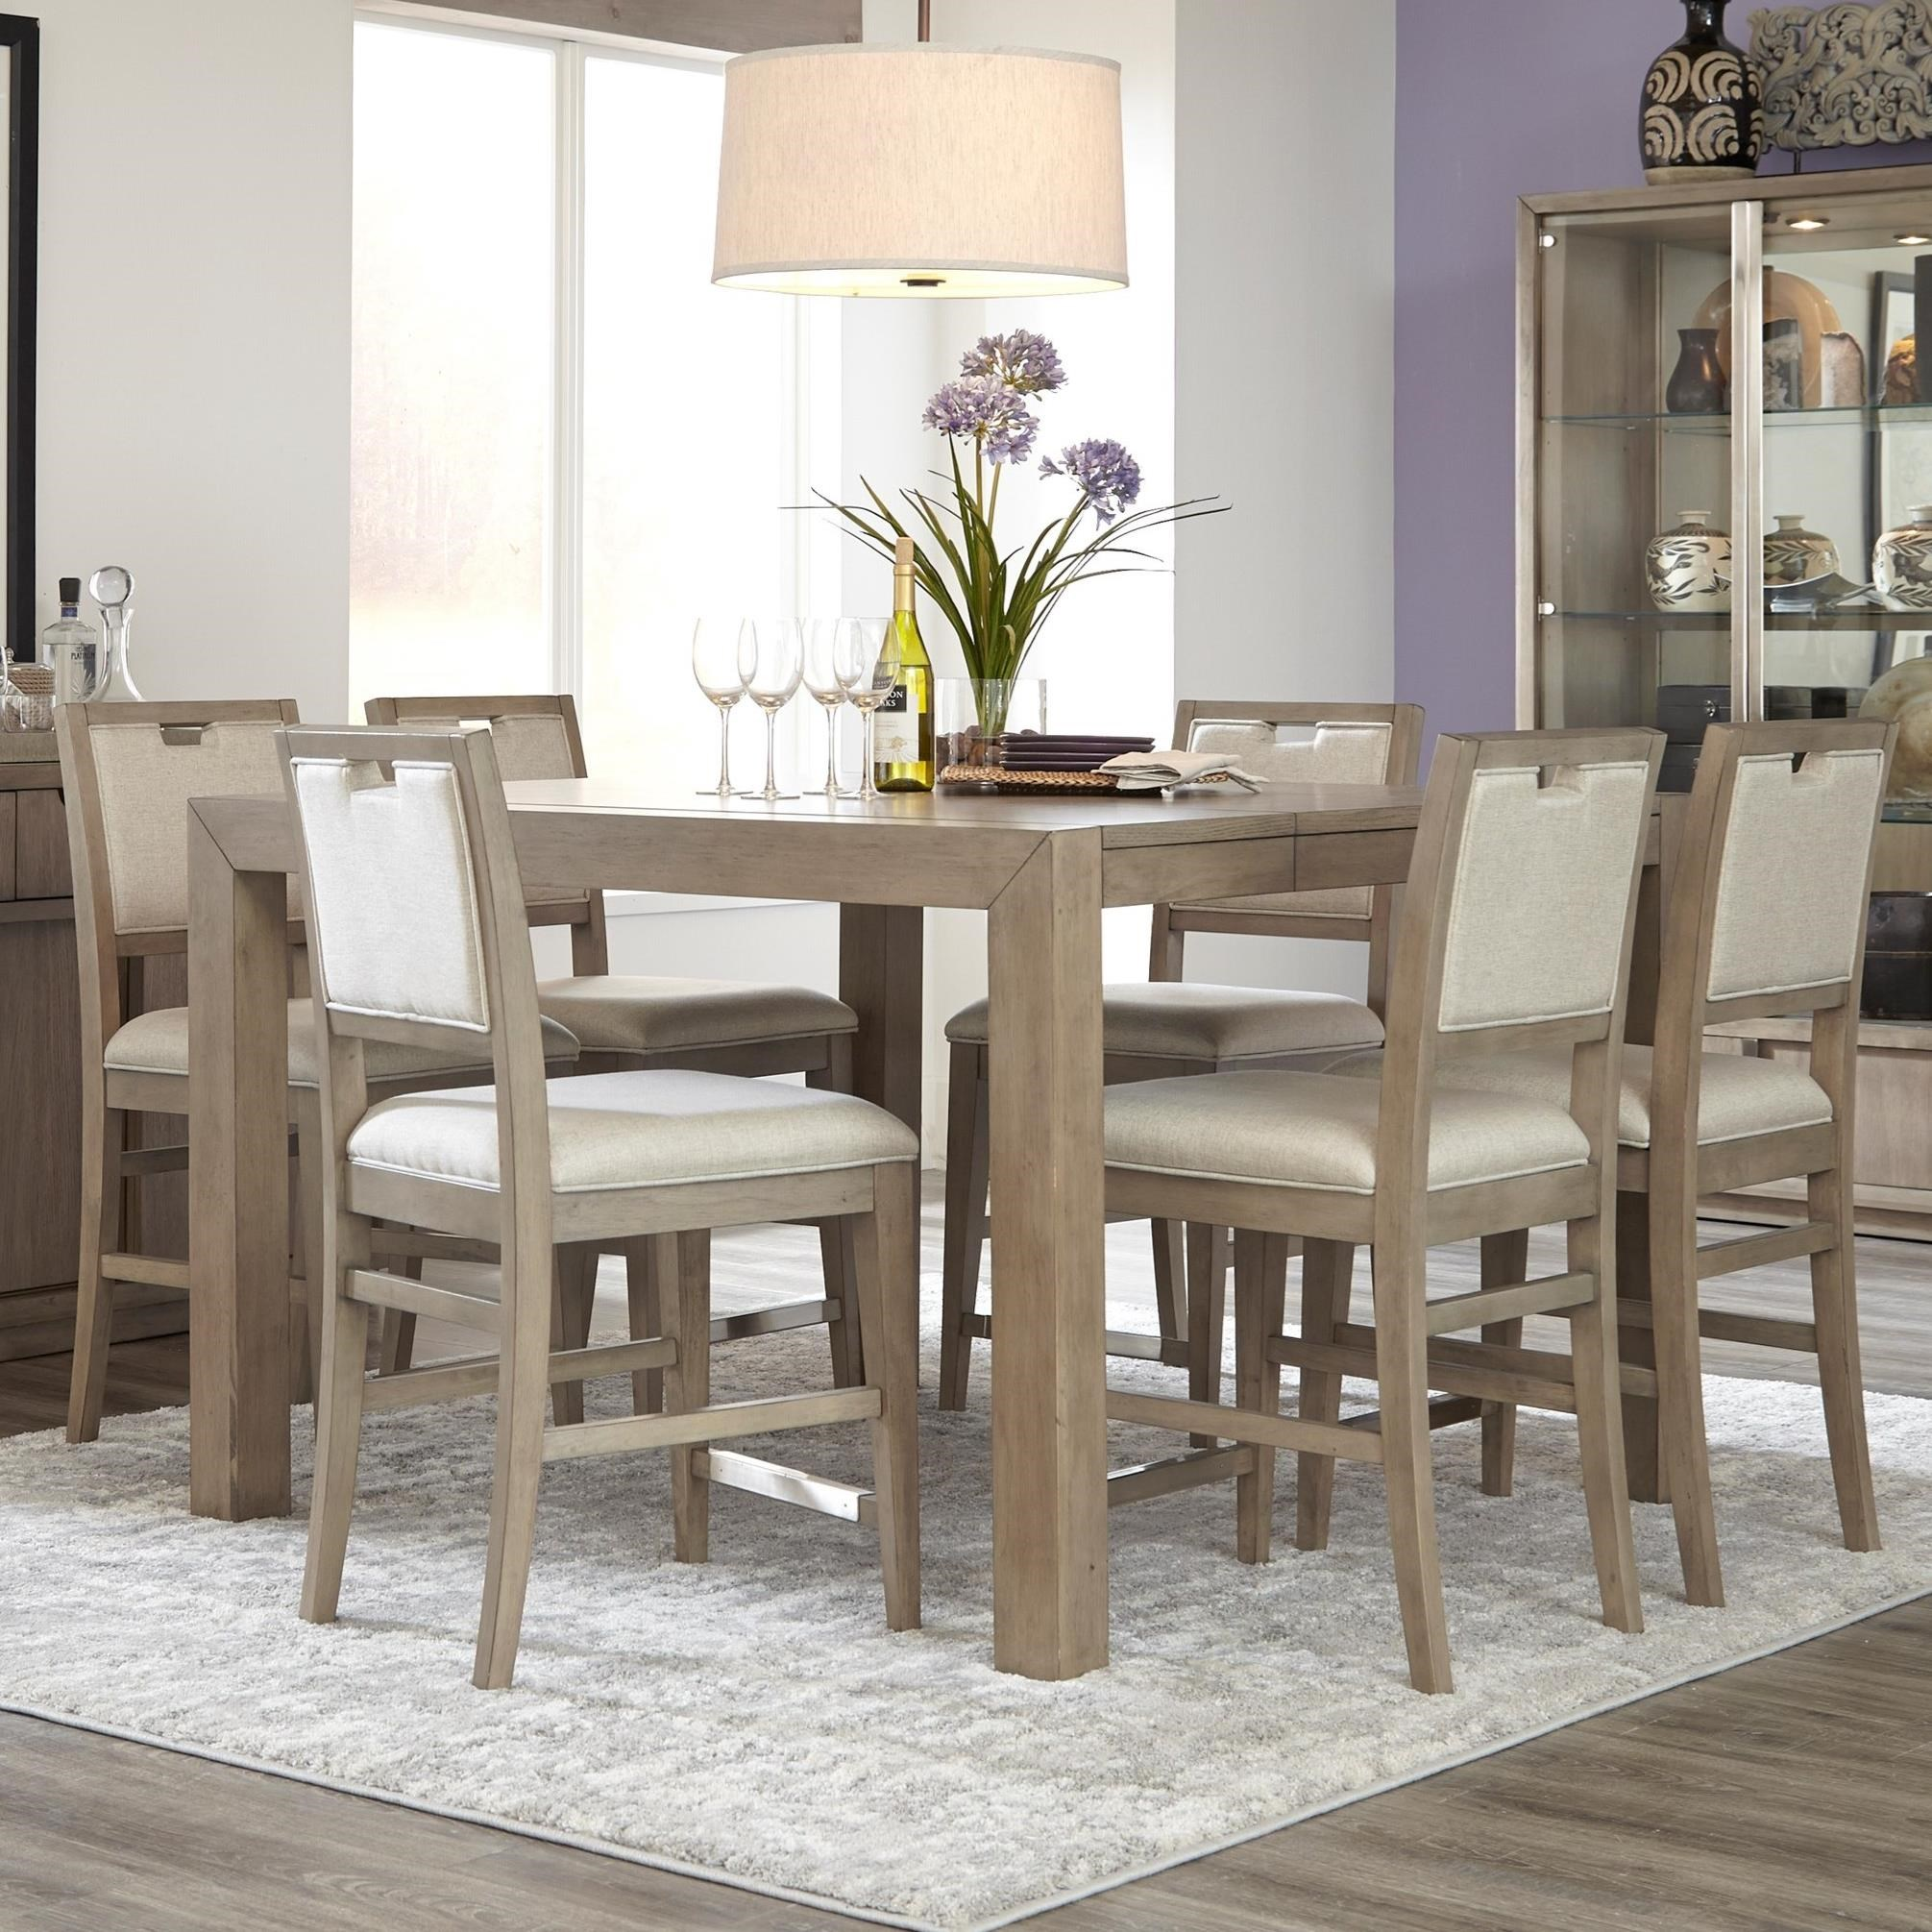 Melbourne 7 Pc Casual Dining Set by Klaussner International at Northeast Factory Direct